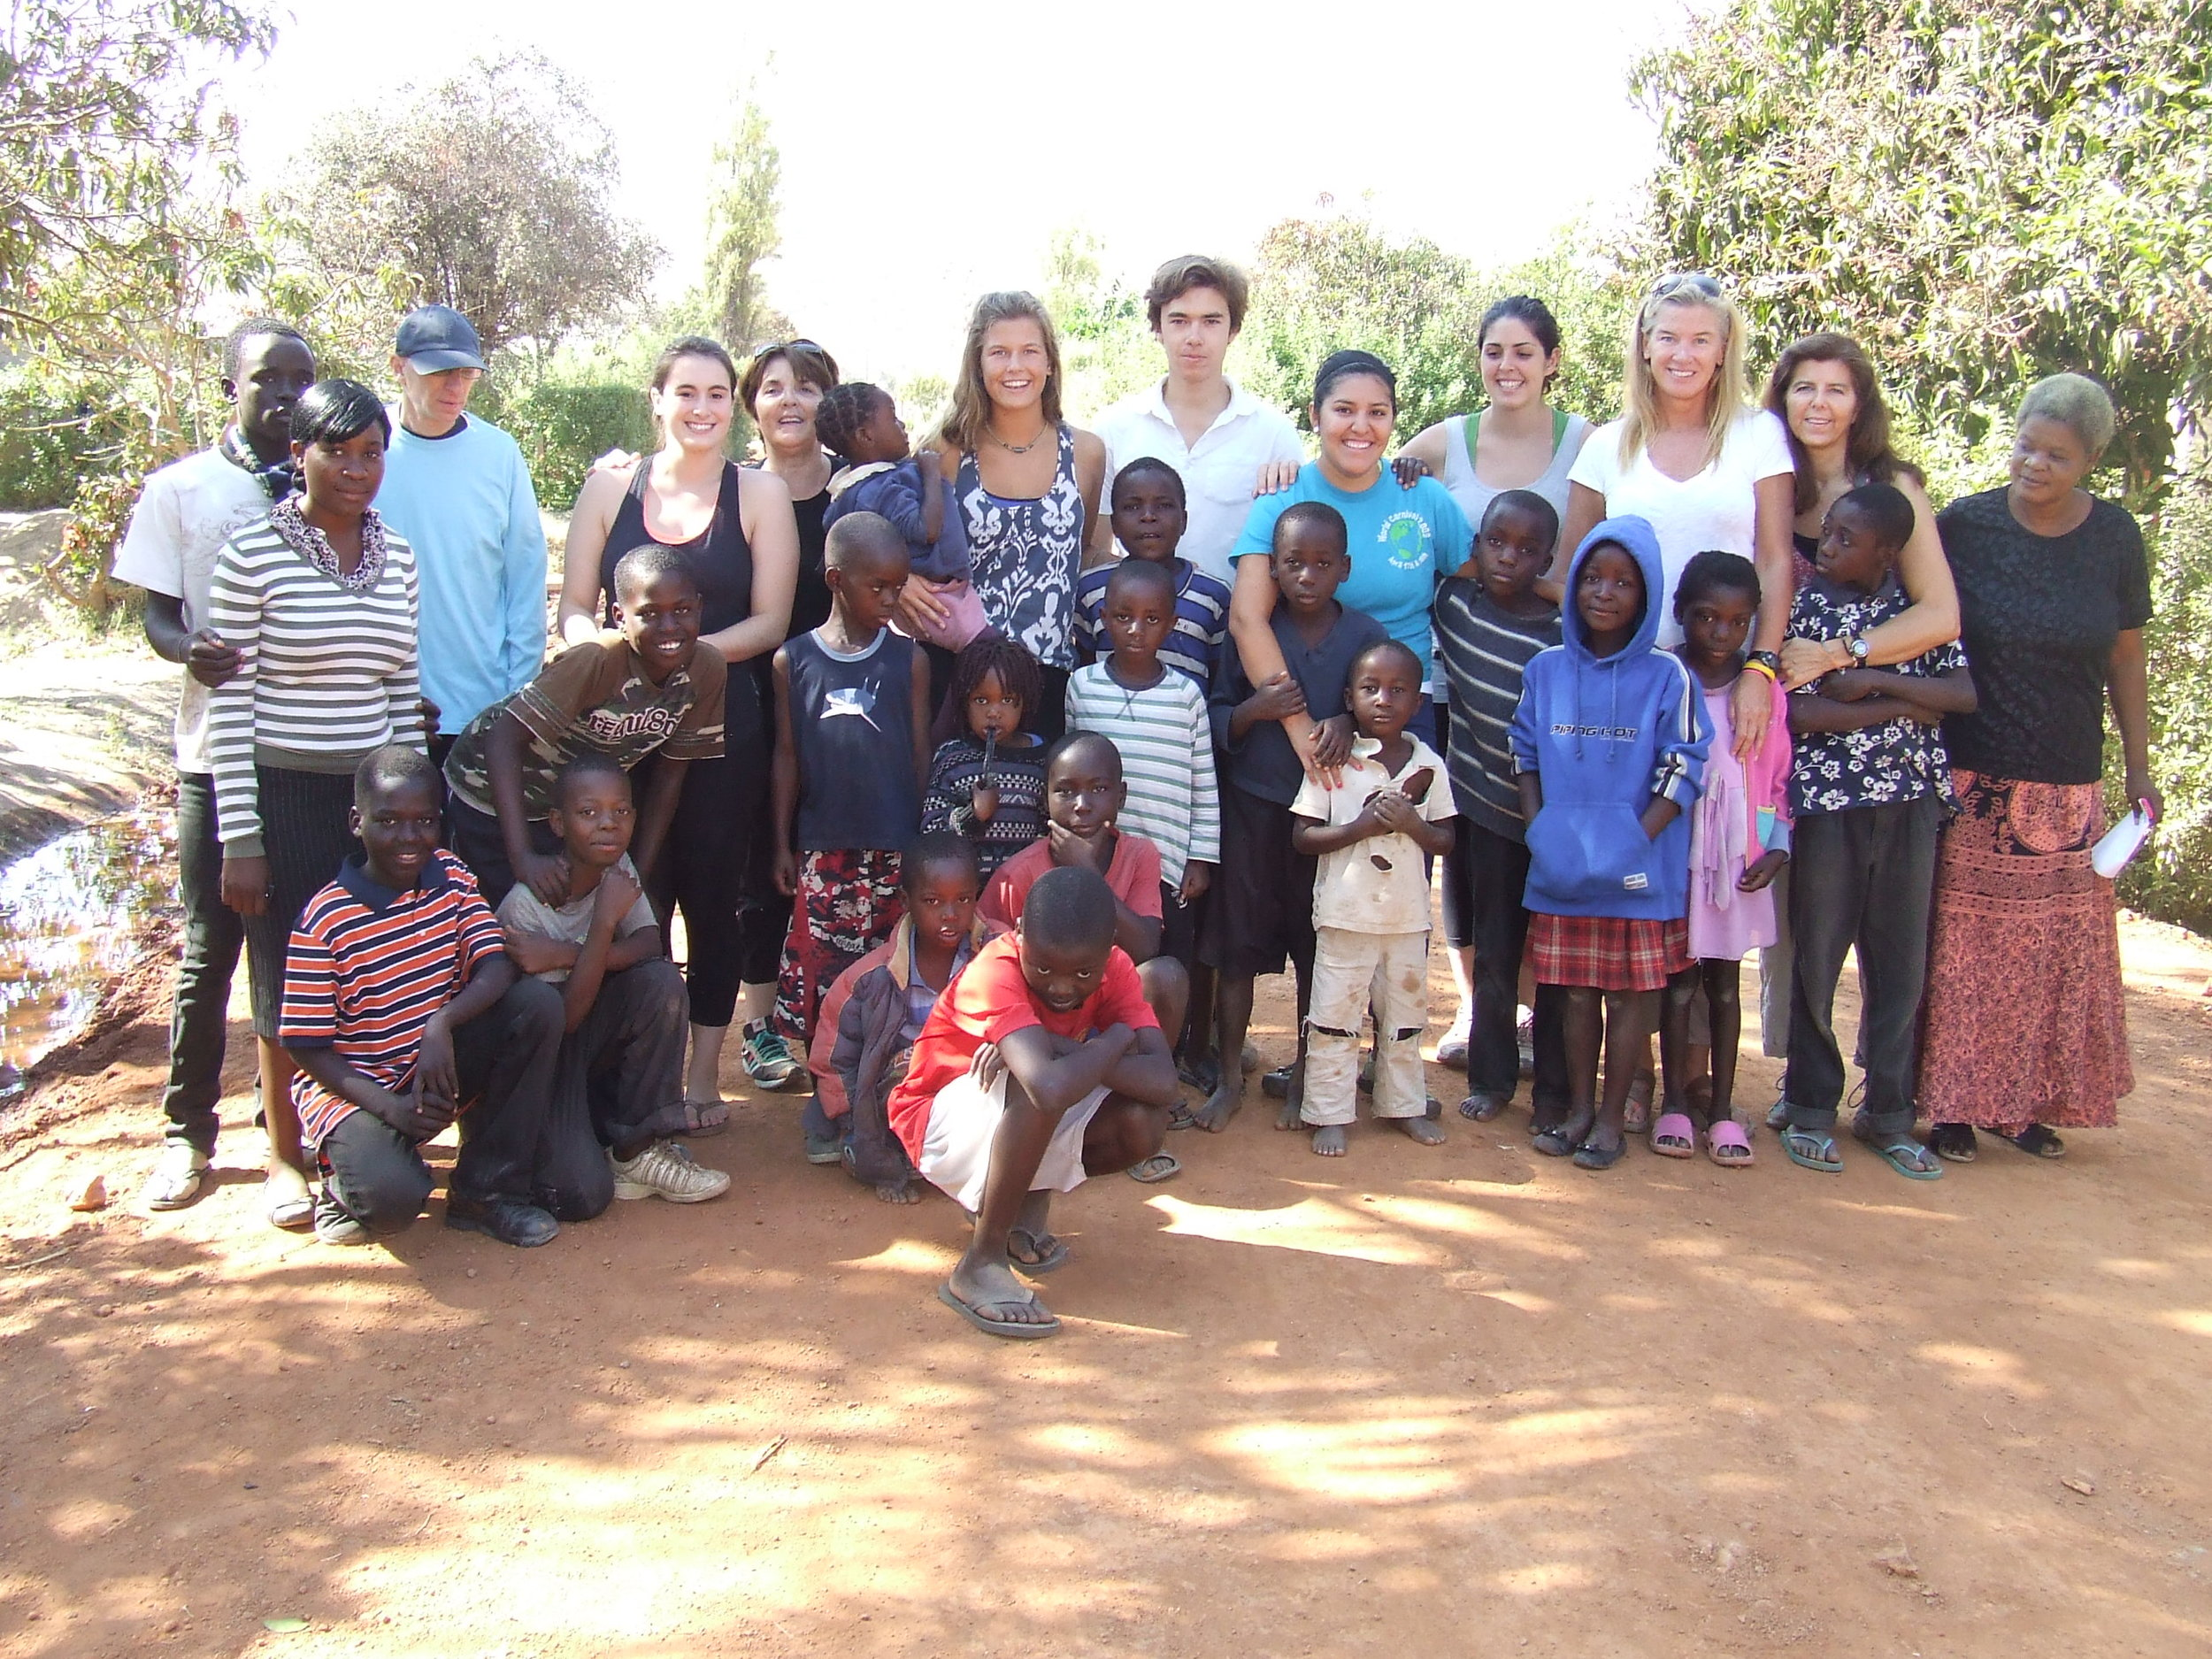 AEP's largest volunteer group traveled to Kafue, Zambia in August 2012.